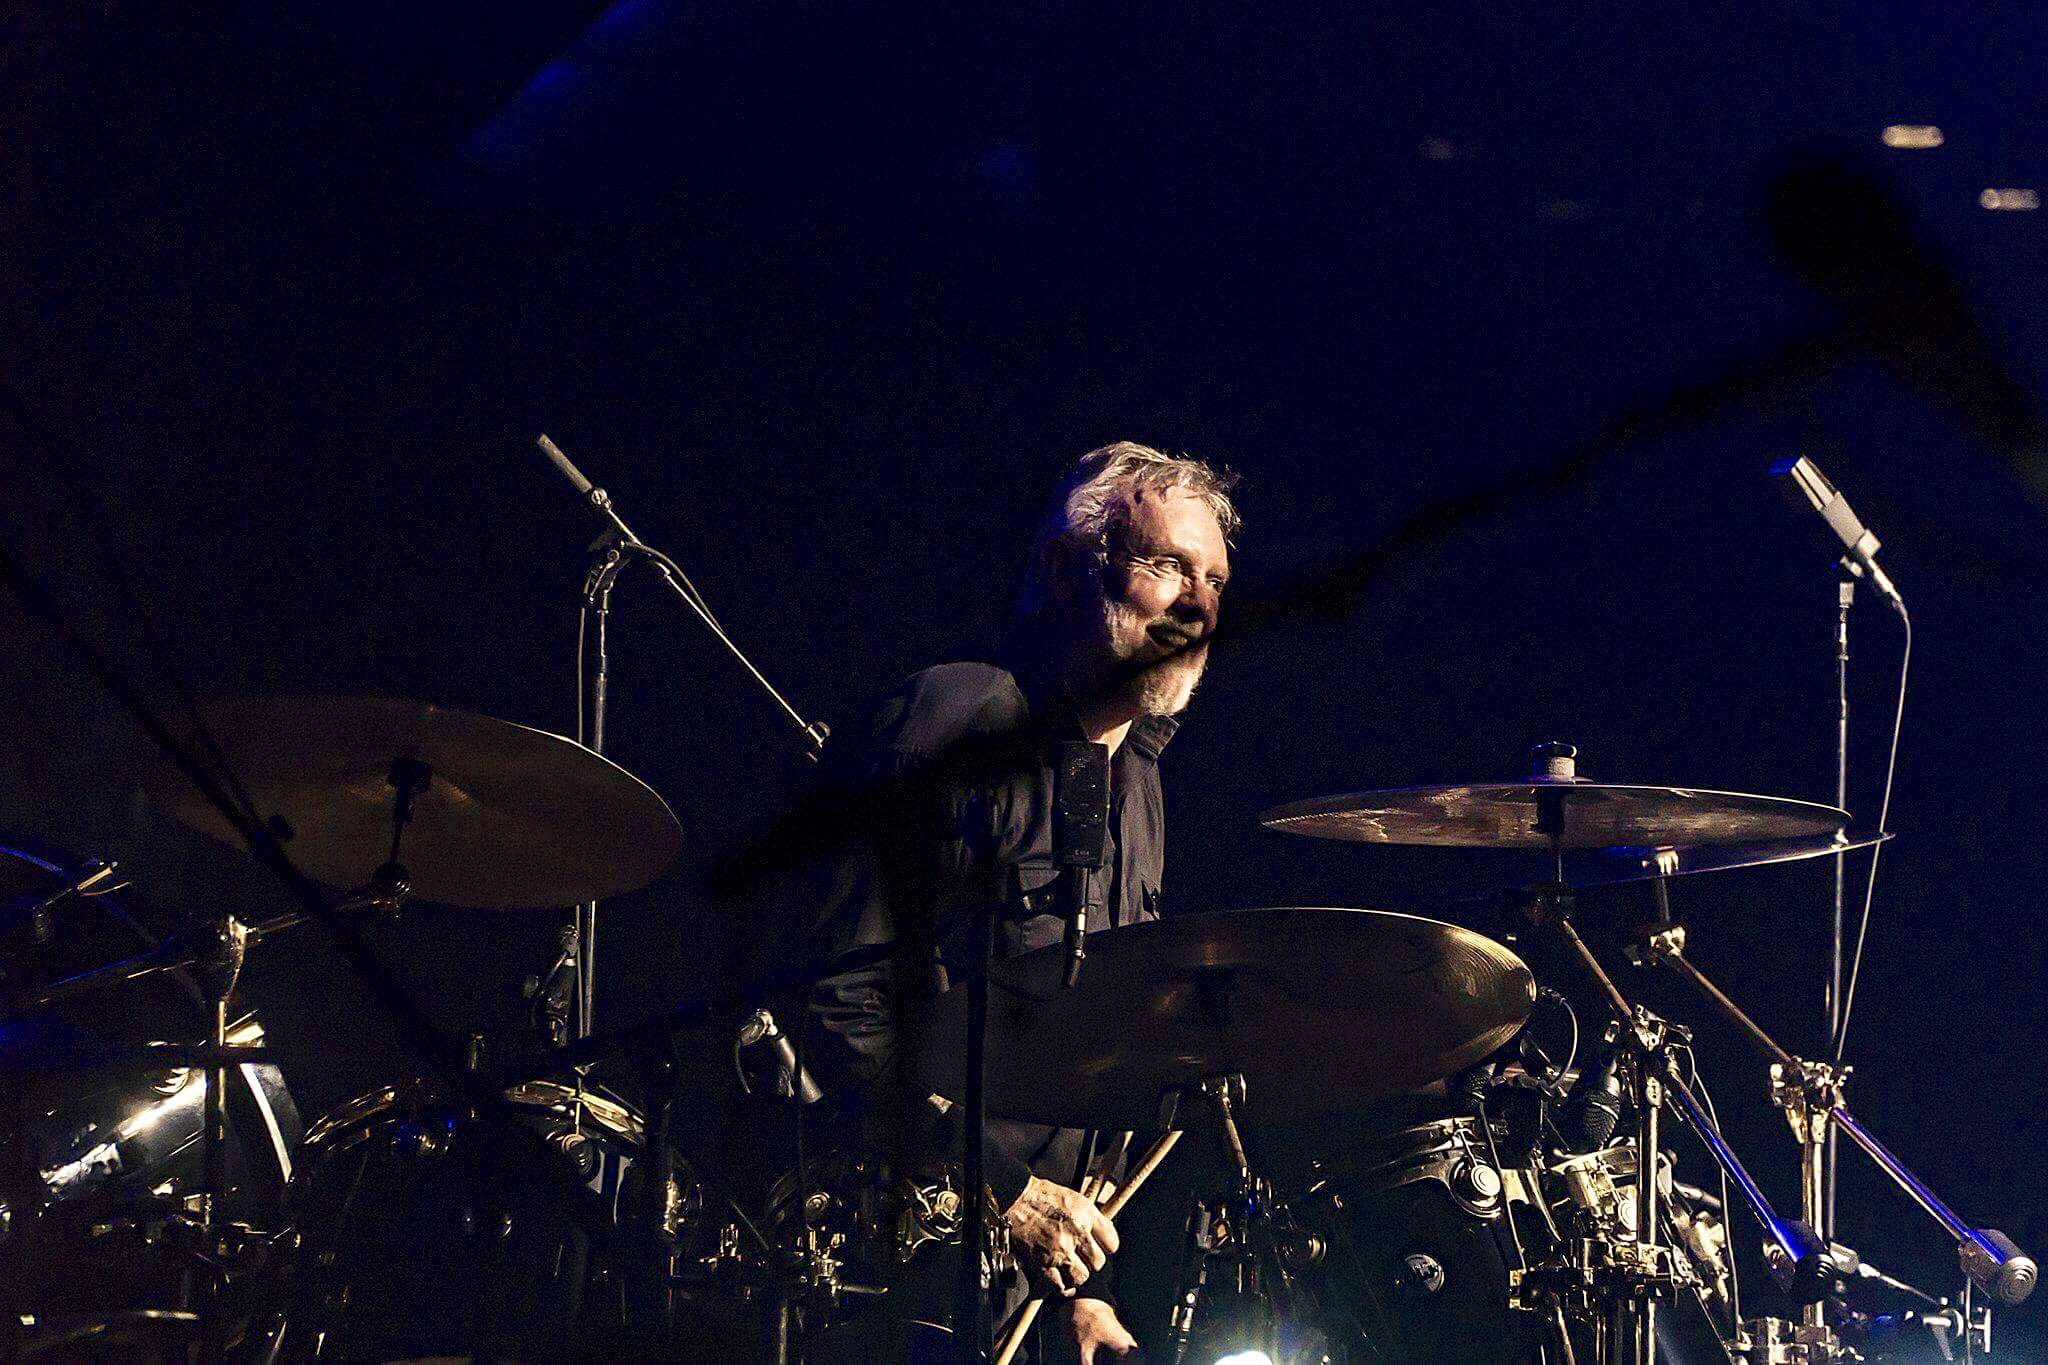 Roger Taylor @OfficialRMT Perth 6/3/18 photo by Rob Golton https://t.co/r3migo2VCU